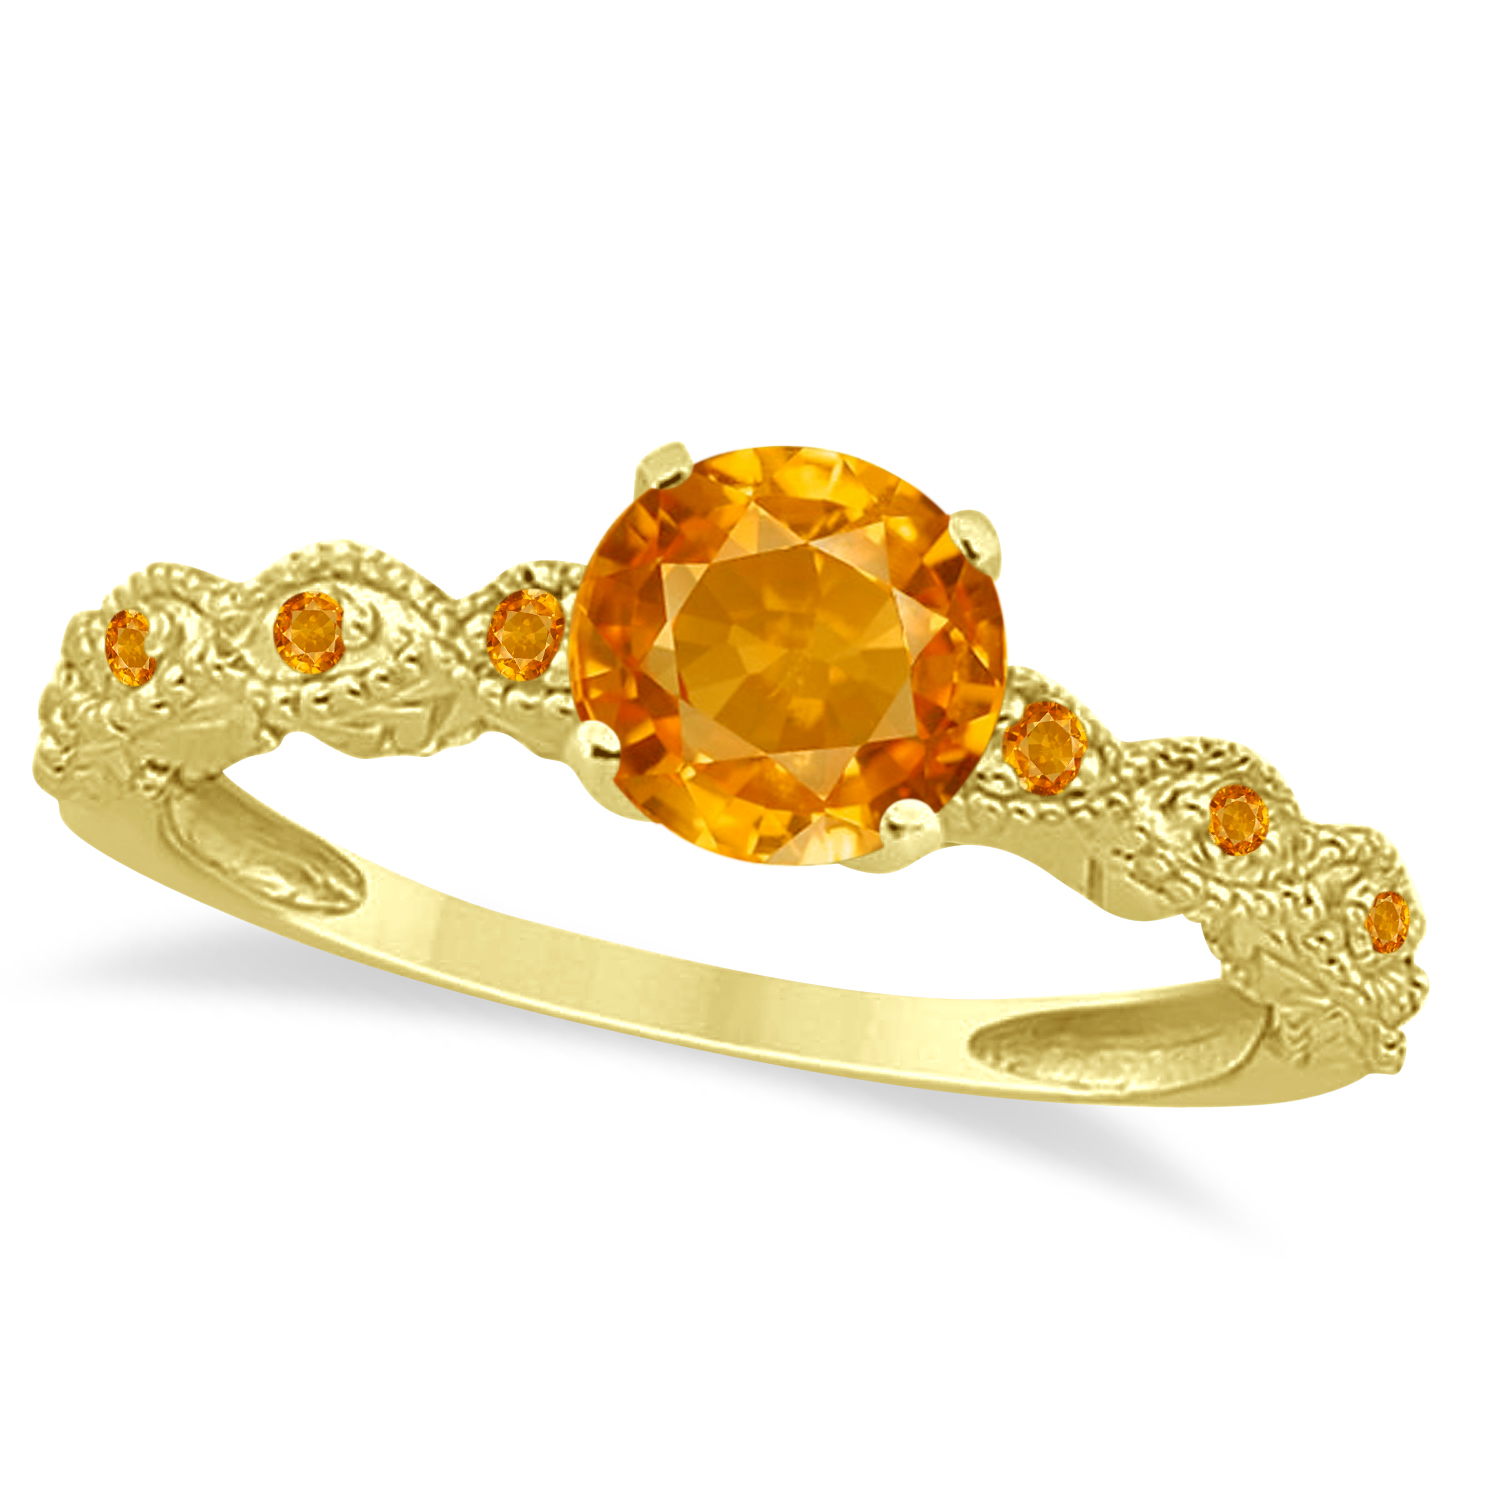 Vintage Style Citrine Engagement Ring 14k Yellow Gold (1.18ct)